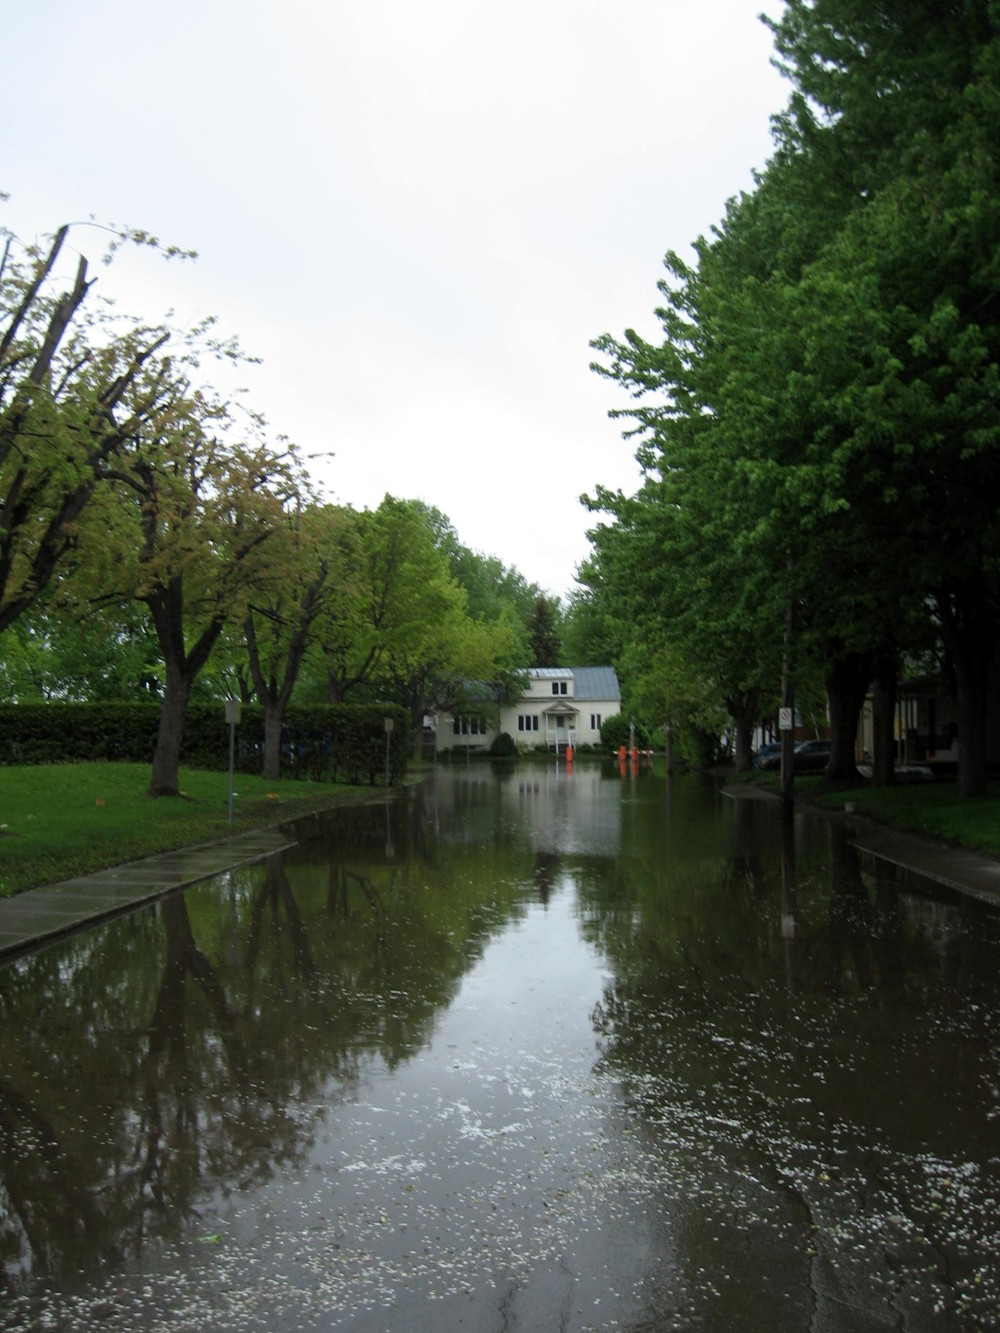 Flooded streets in annual flood in Quebec town of St Jean sur Richelieu